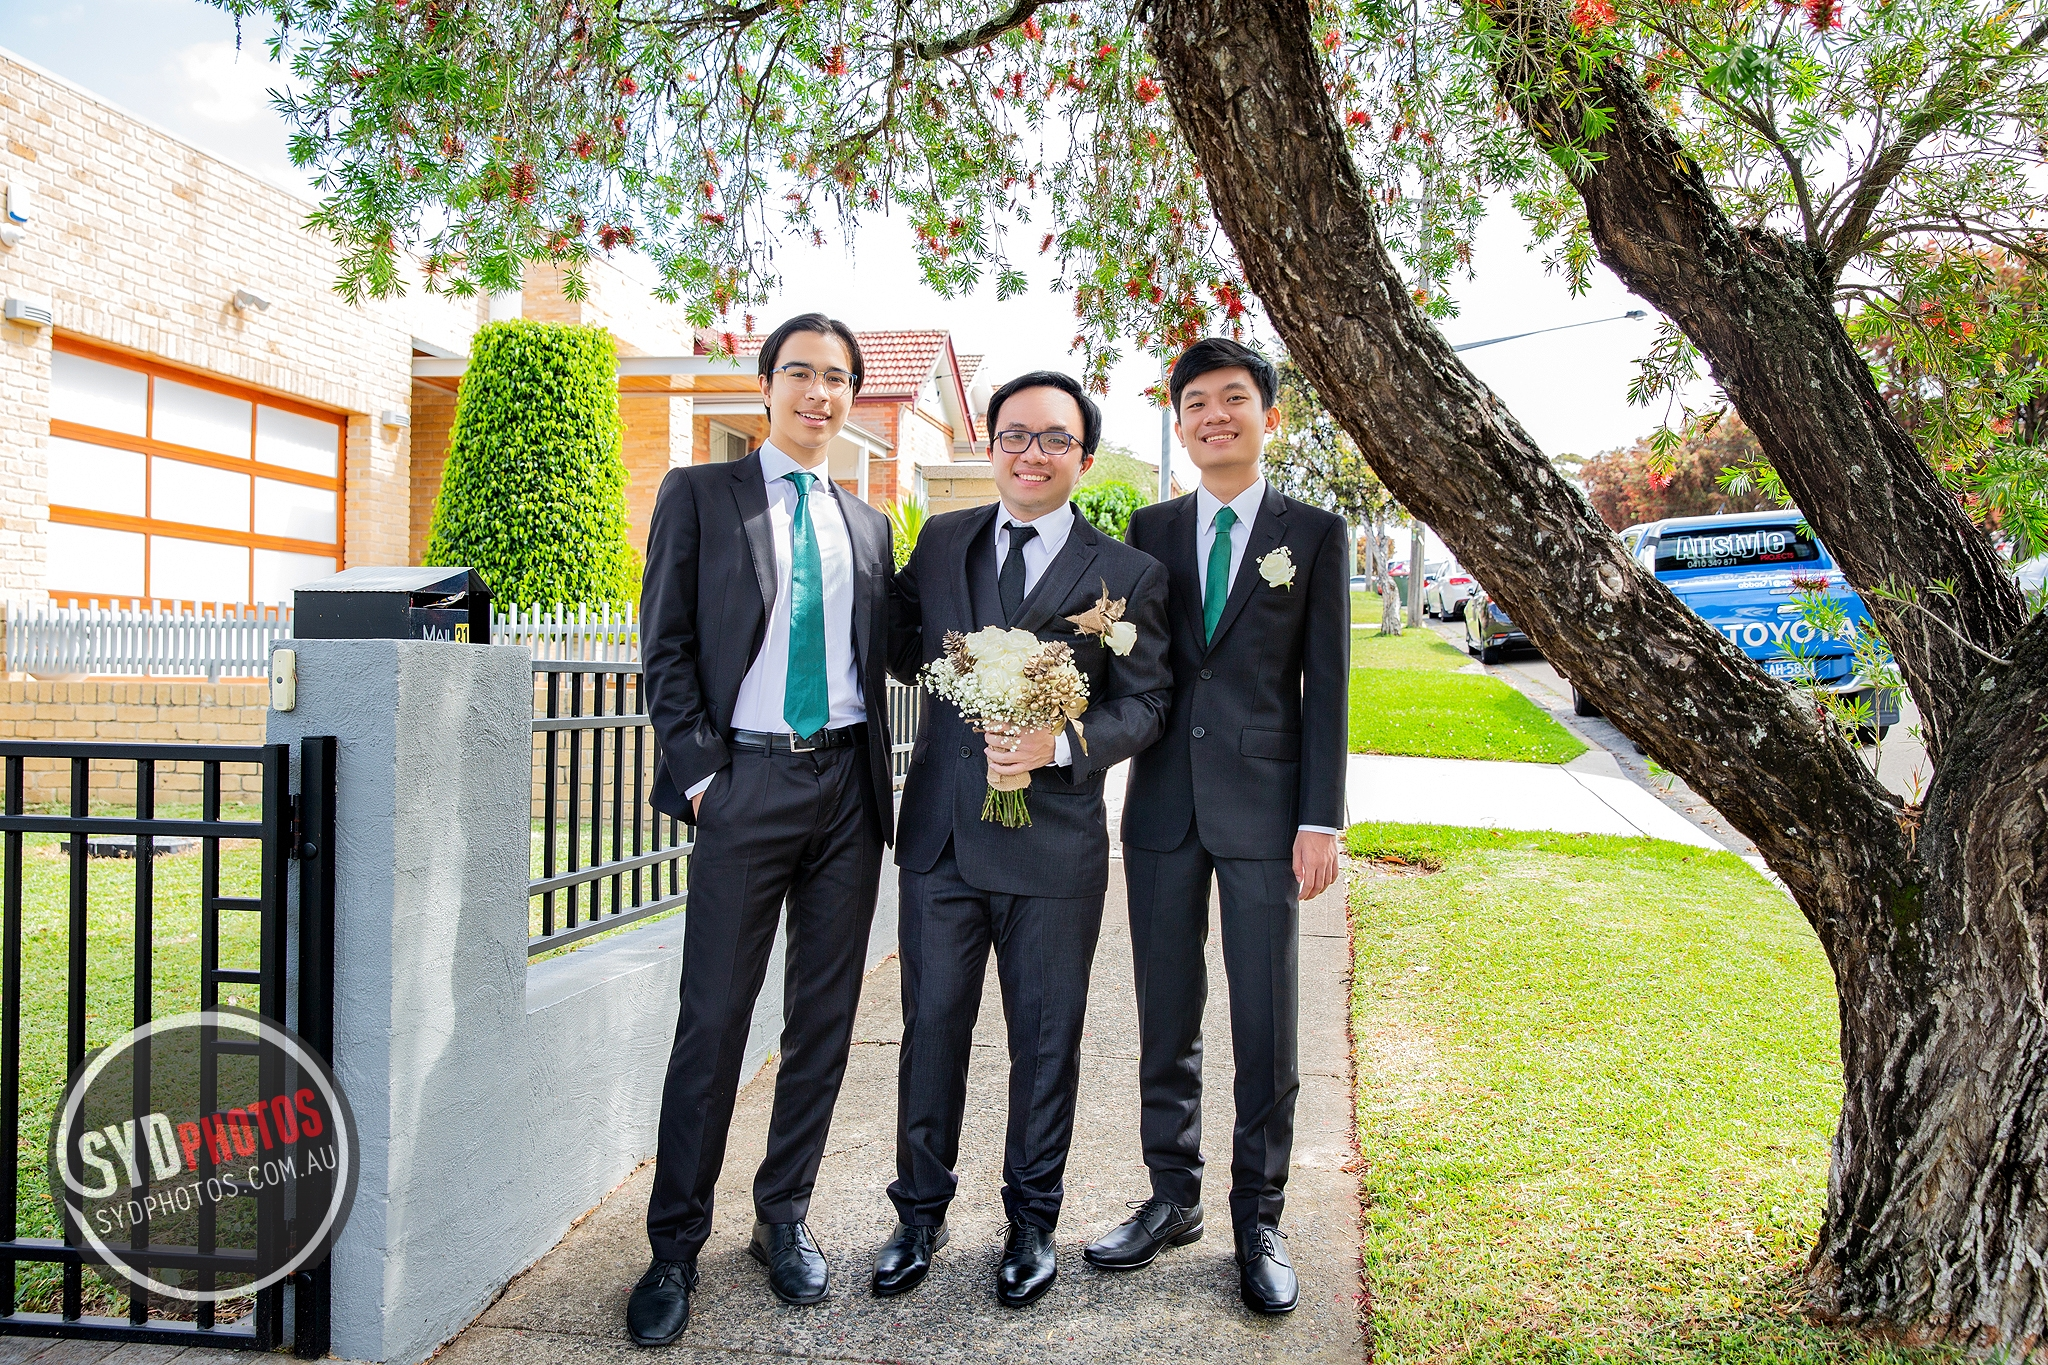 ID-103458-20181021-William-jpg (65).jpg, By Photographer Sydphotos.wedding, Created on 28 Jan 2019, SYDPHOTOS Photography all rights reserved.